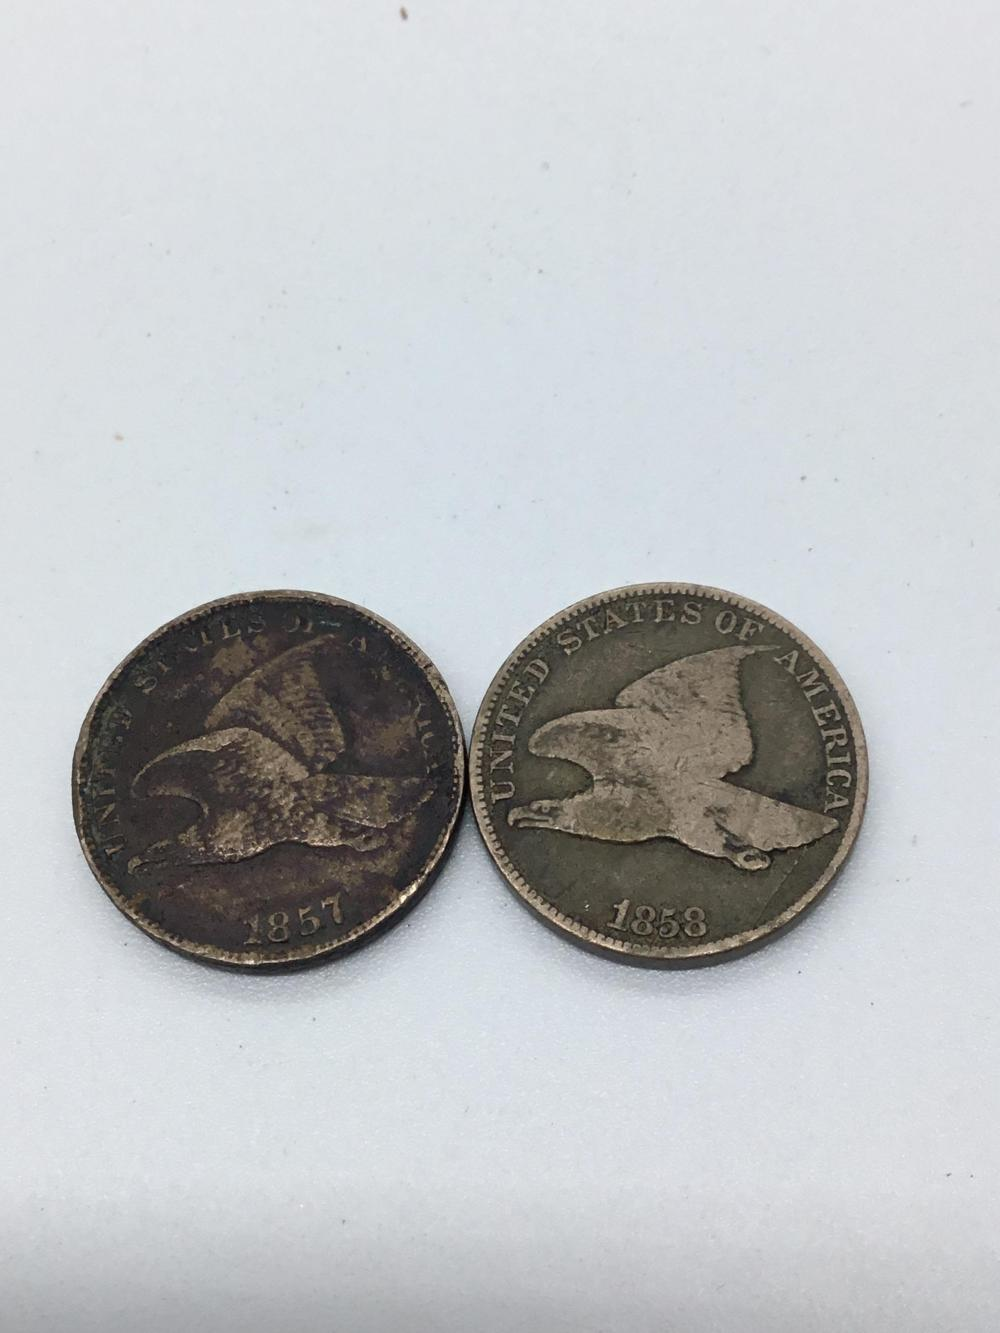 1857 and 1858 Flying eagle cents